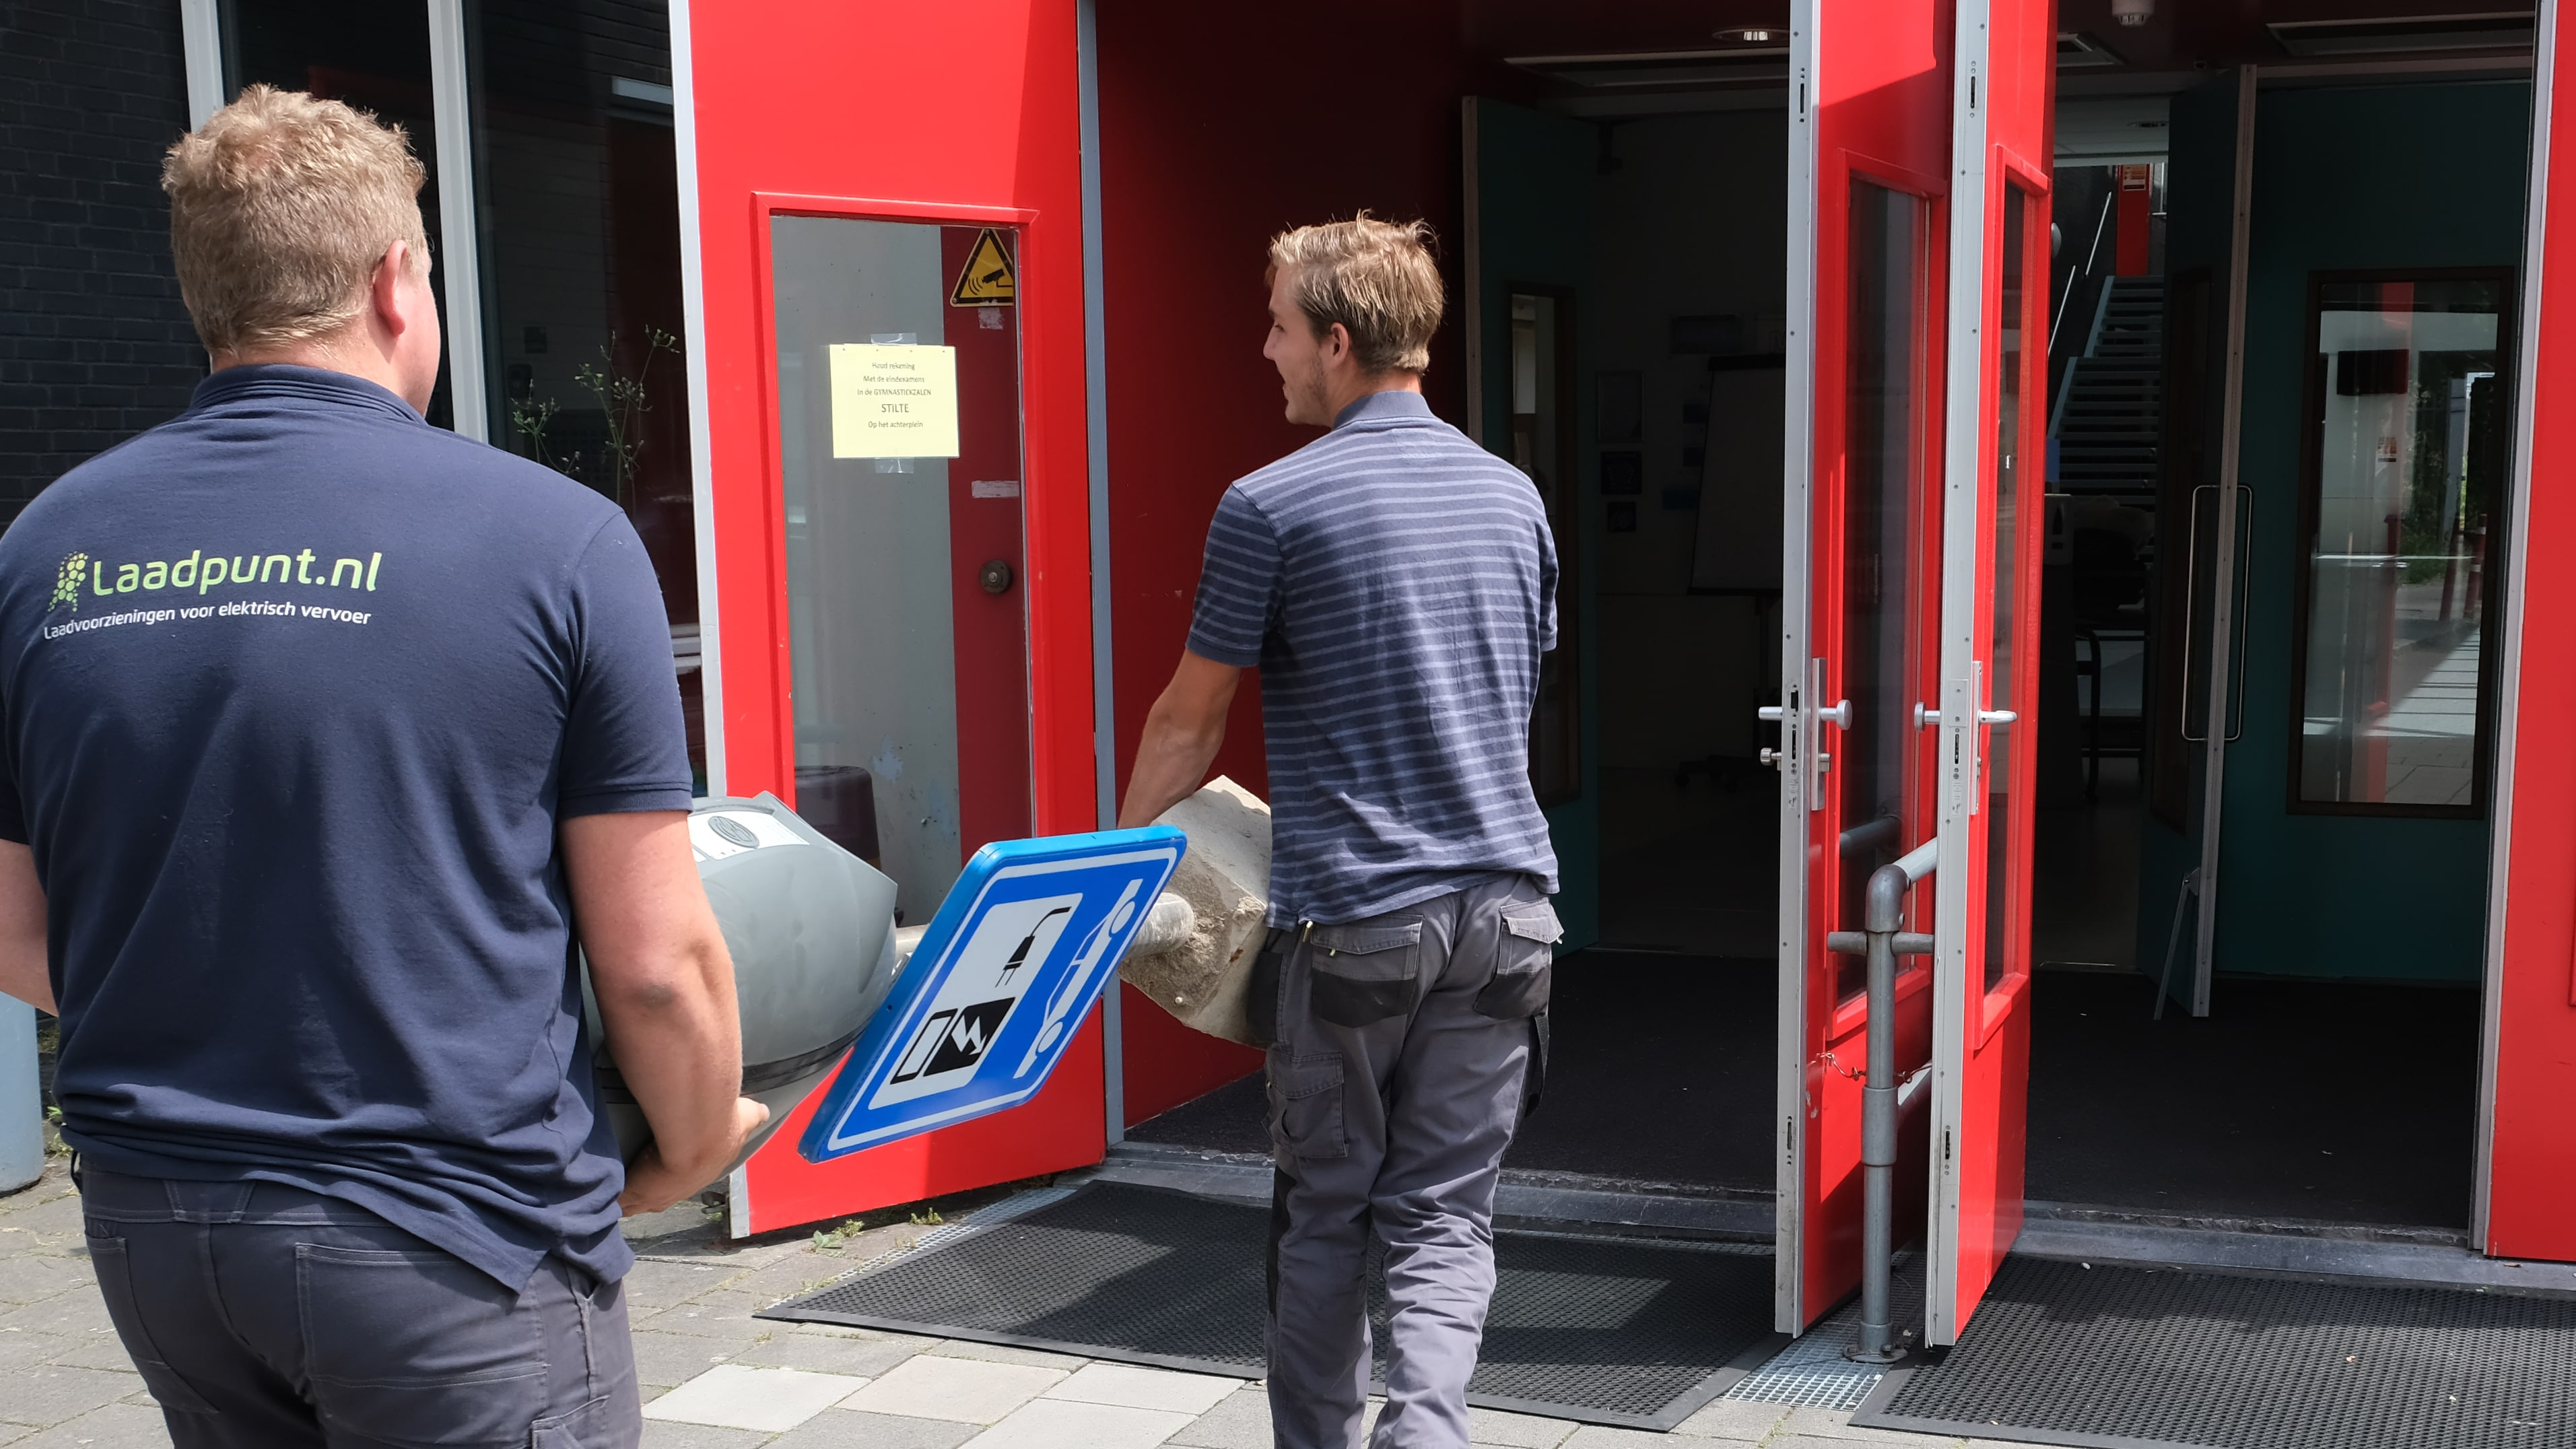 Installers from Laadpunt Nederland delivered the EVBox BusinessLine charging stations to the schools